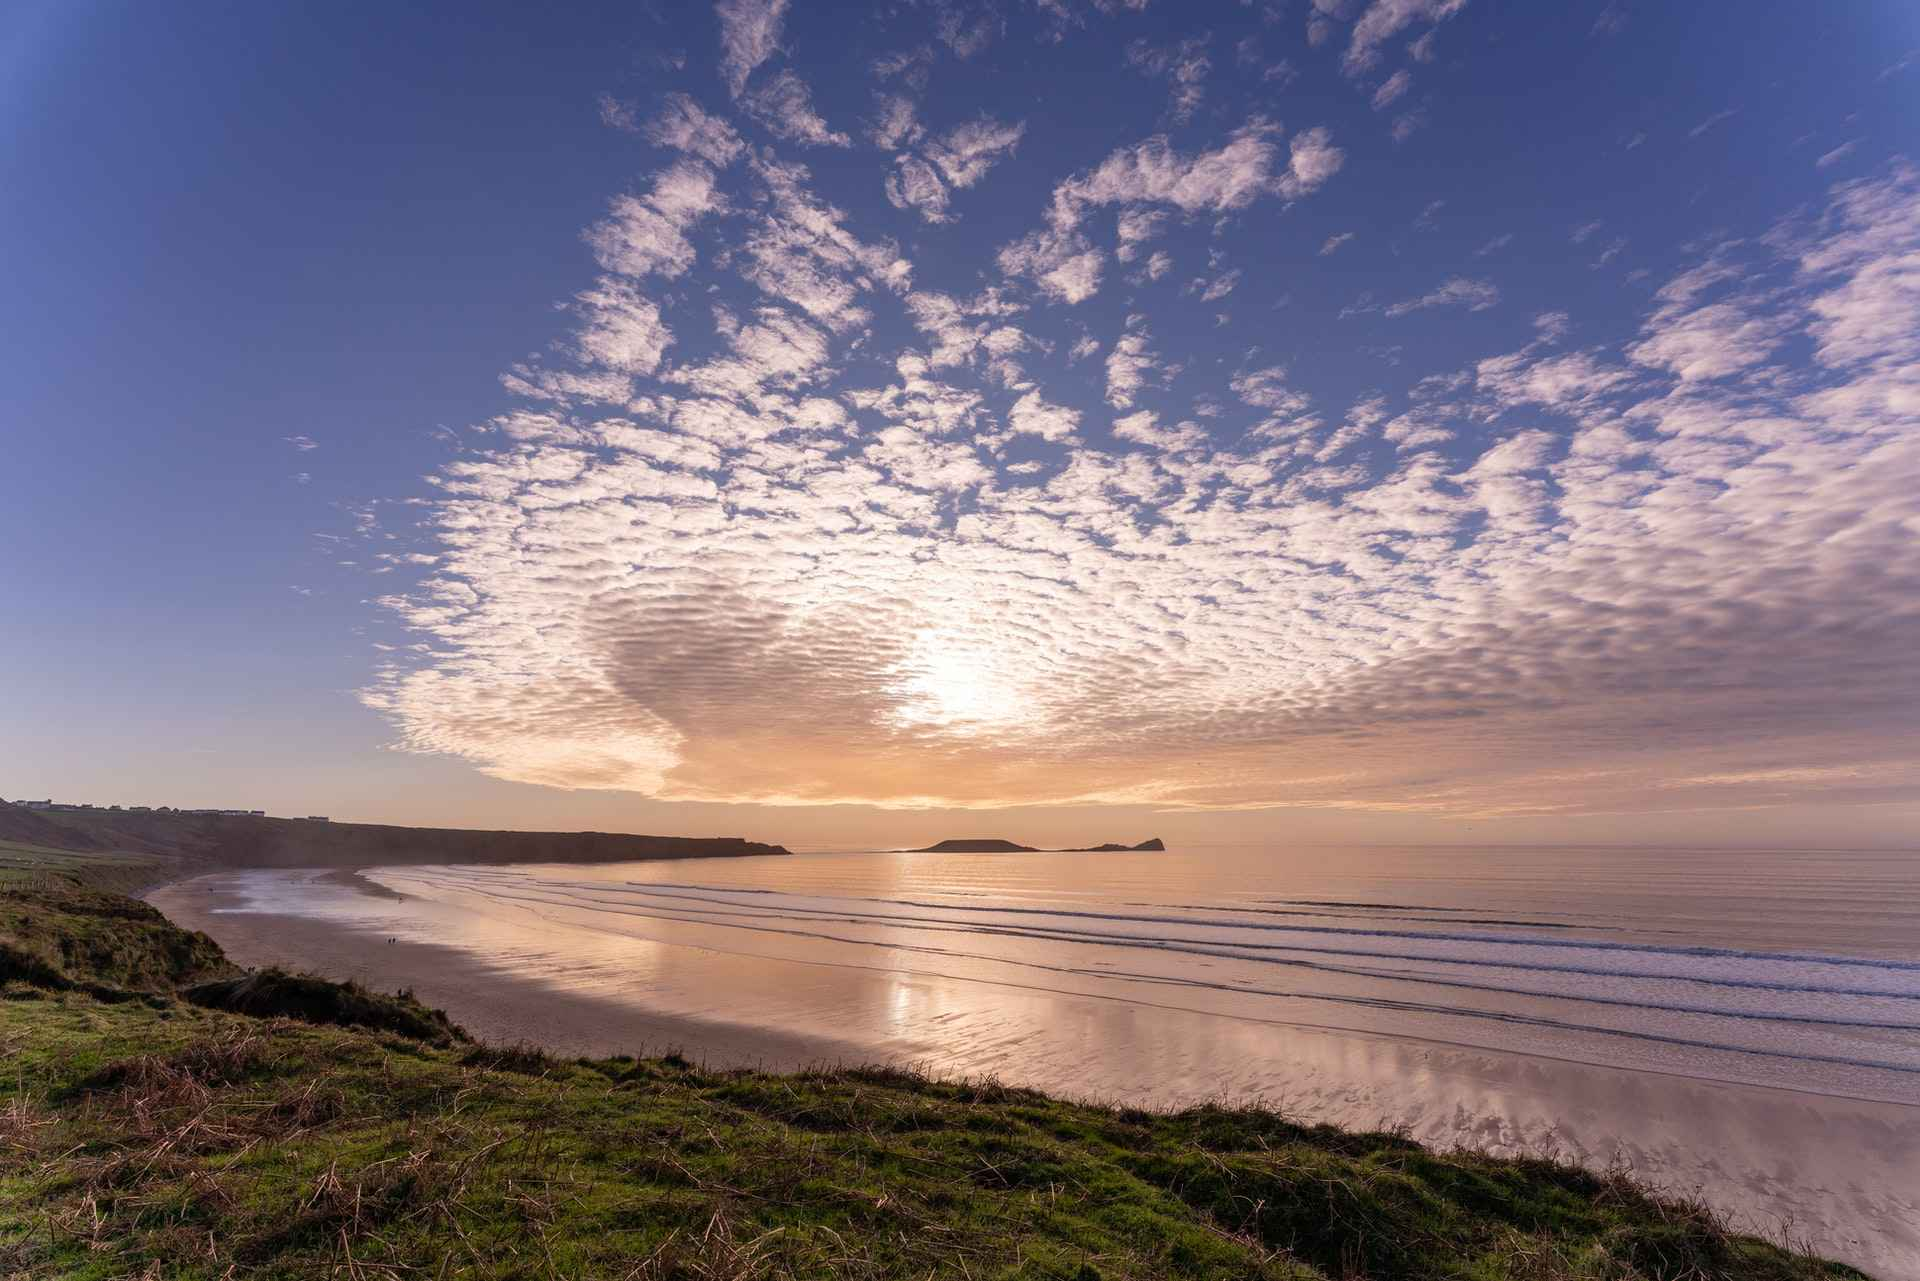 stratus-clouds-at-sundown-over-worms-head-on-the-gower-peninsula-days-out-in-south-wales